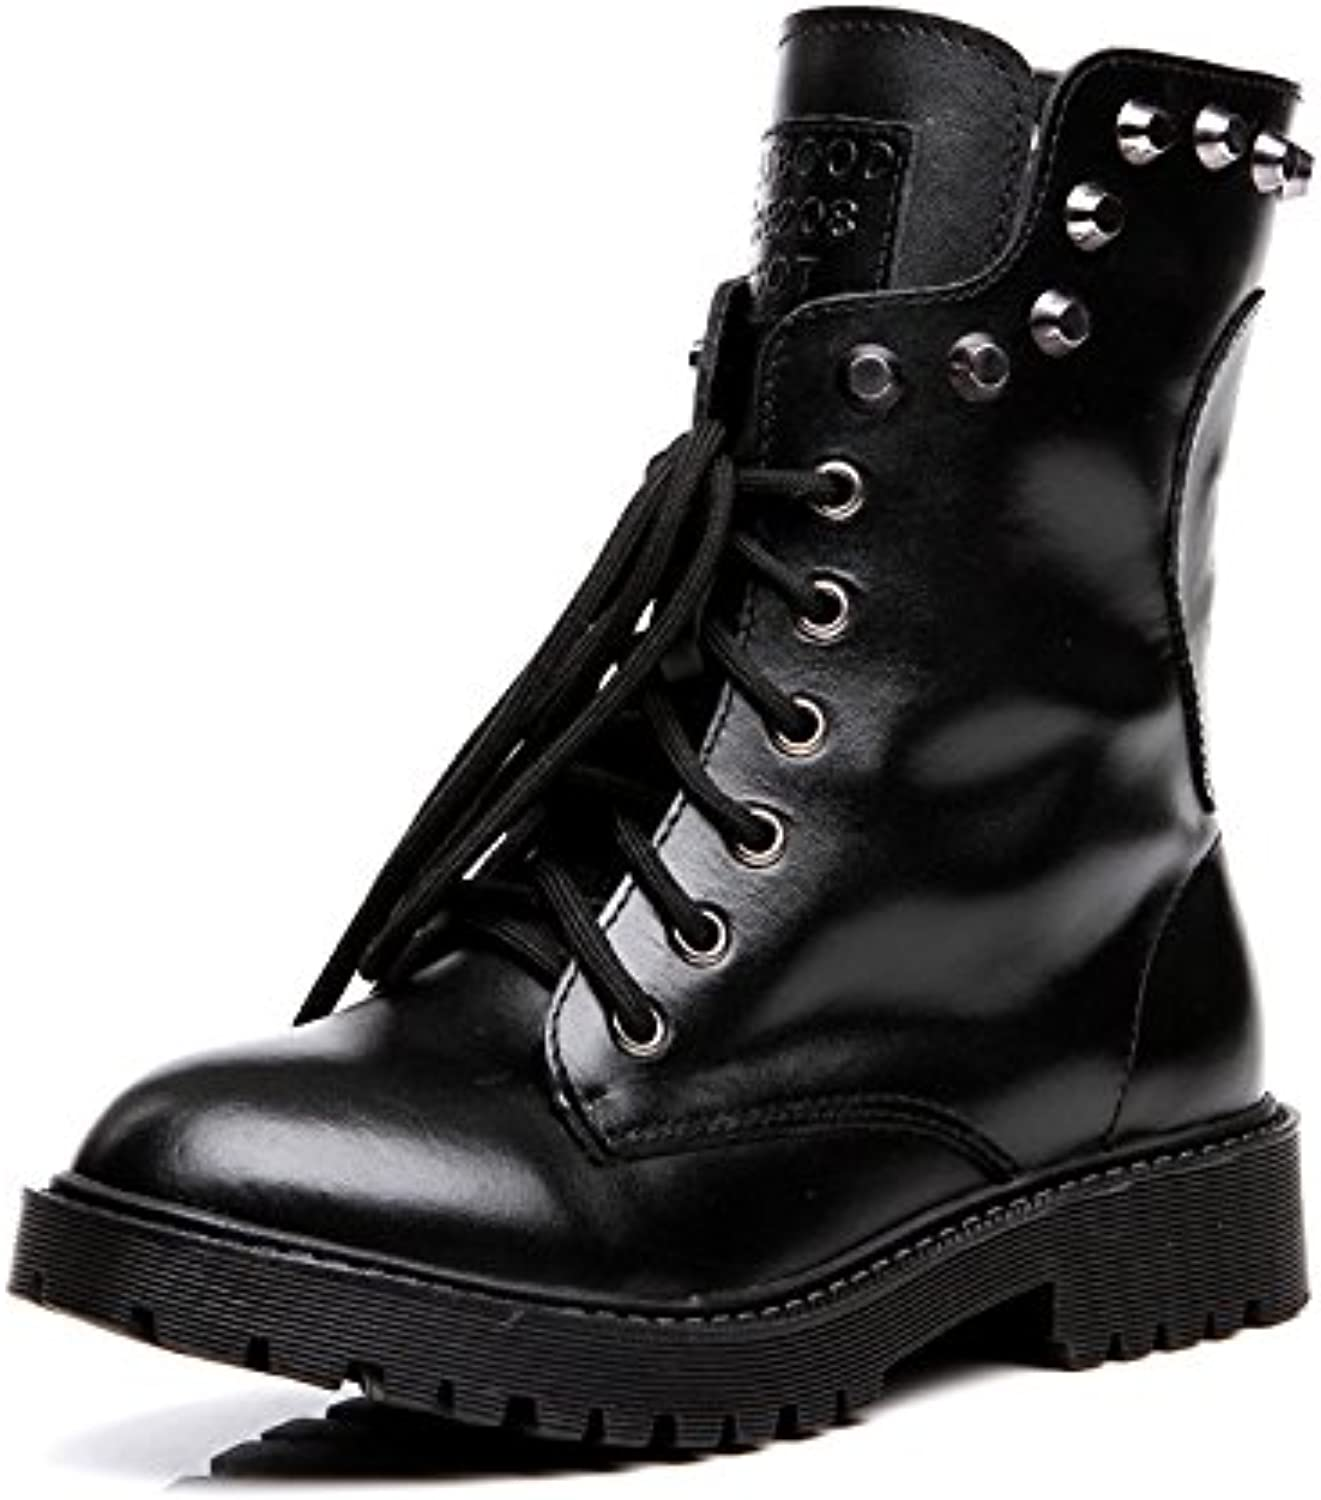 AVBGT New Leather Boots Autumn Winter Short Boots Rivets Retro Students Europe And America